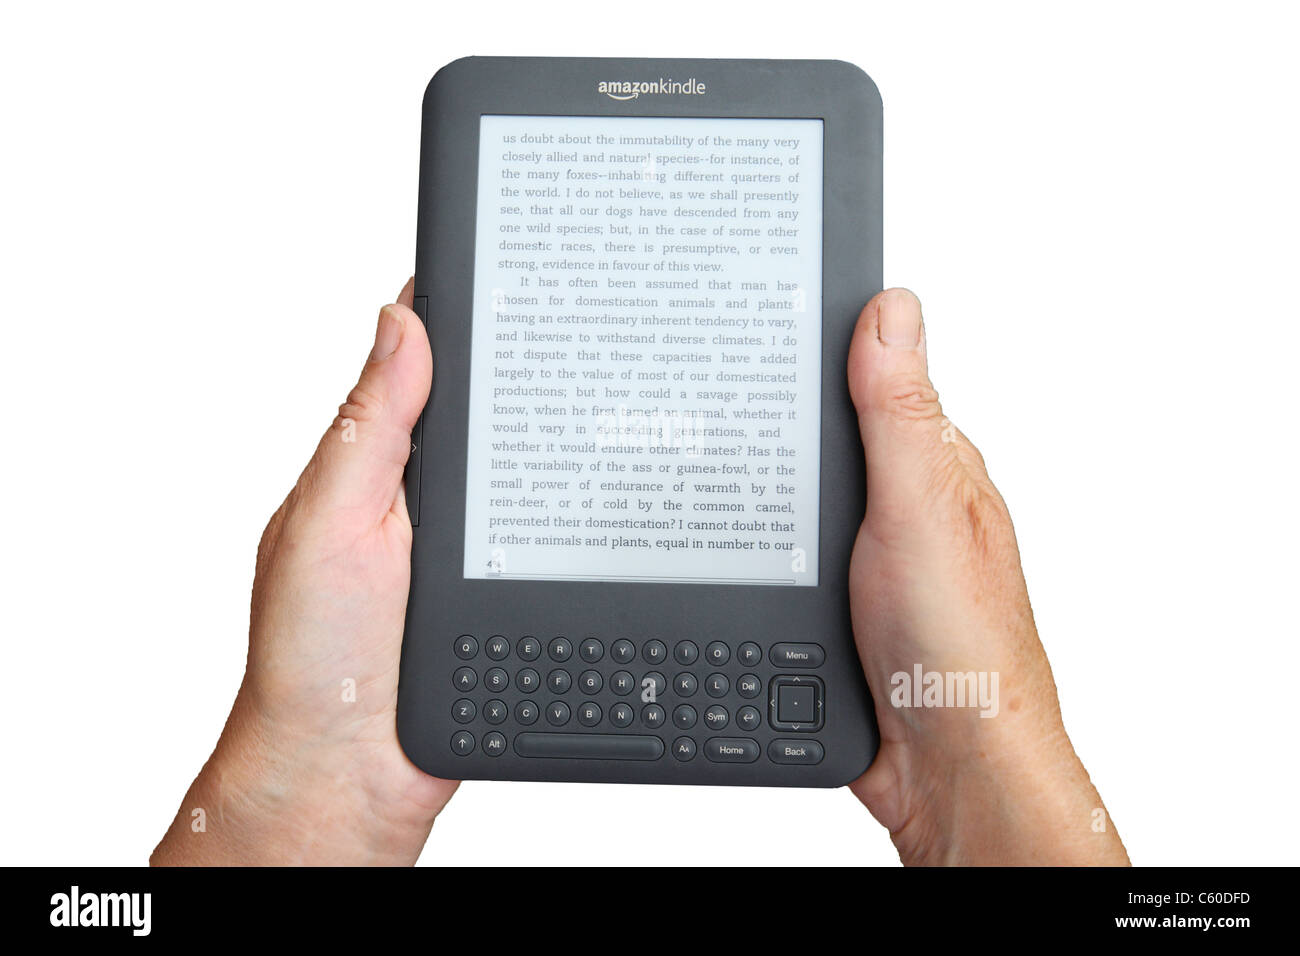 An Amazon Kindle E-book reader held within a woman's hands  isolated on white background - Stock Image